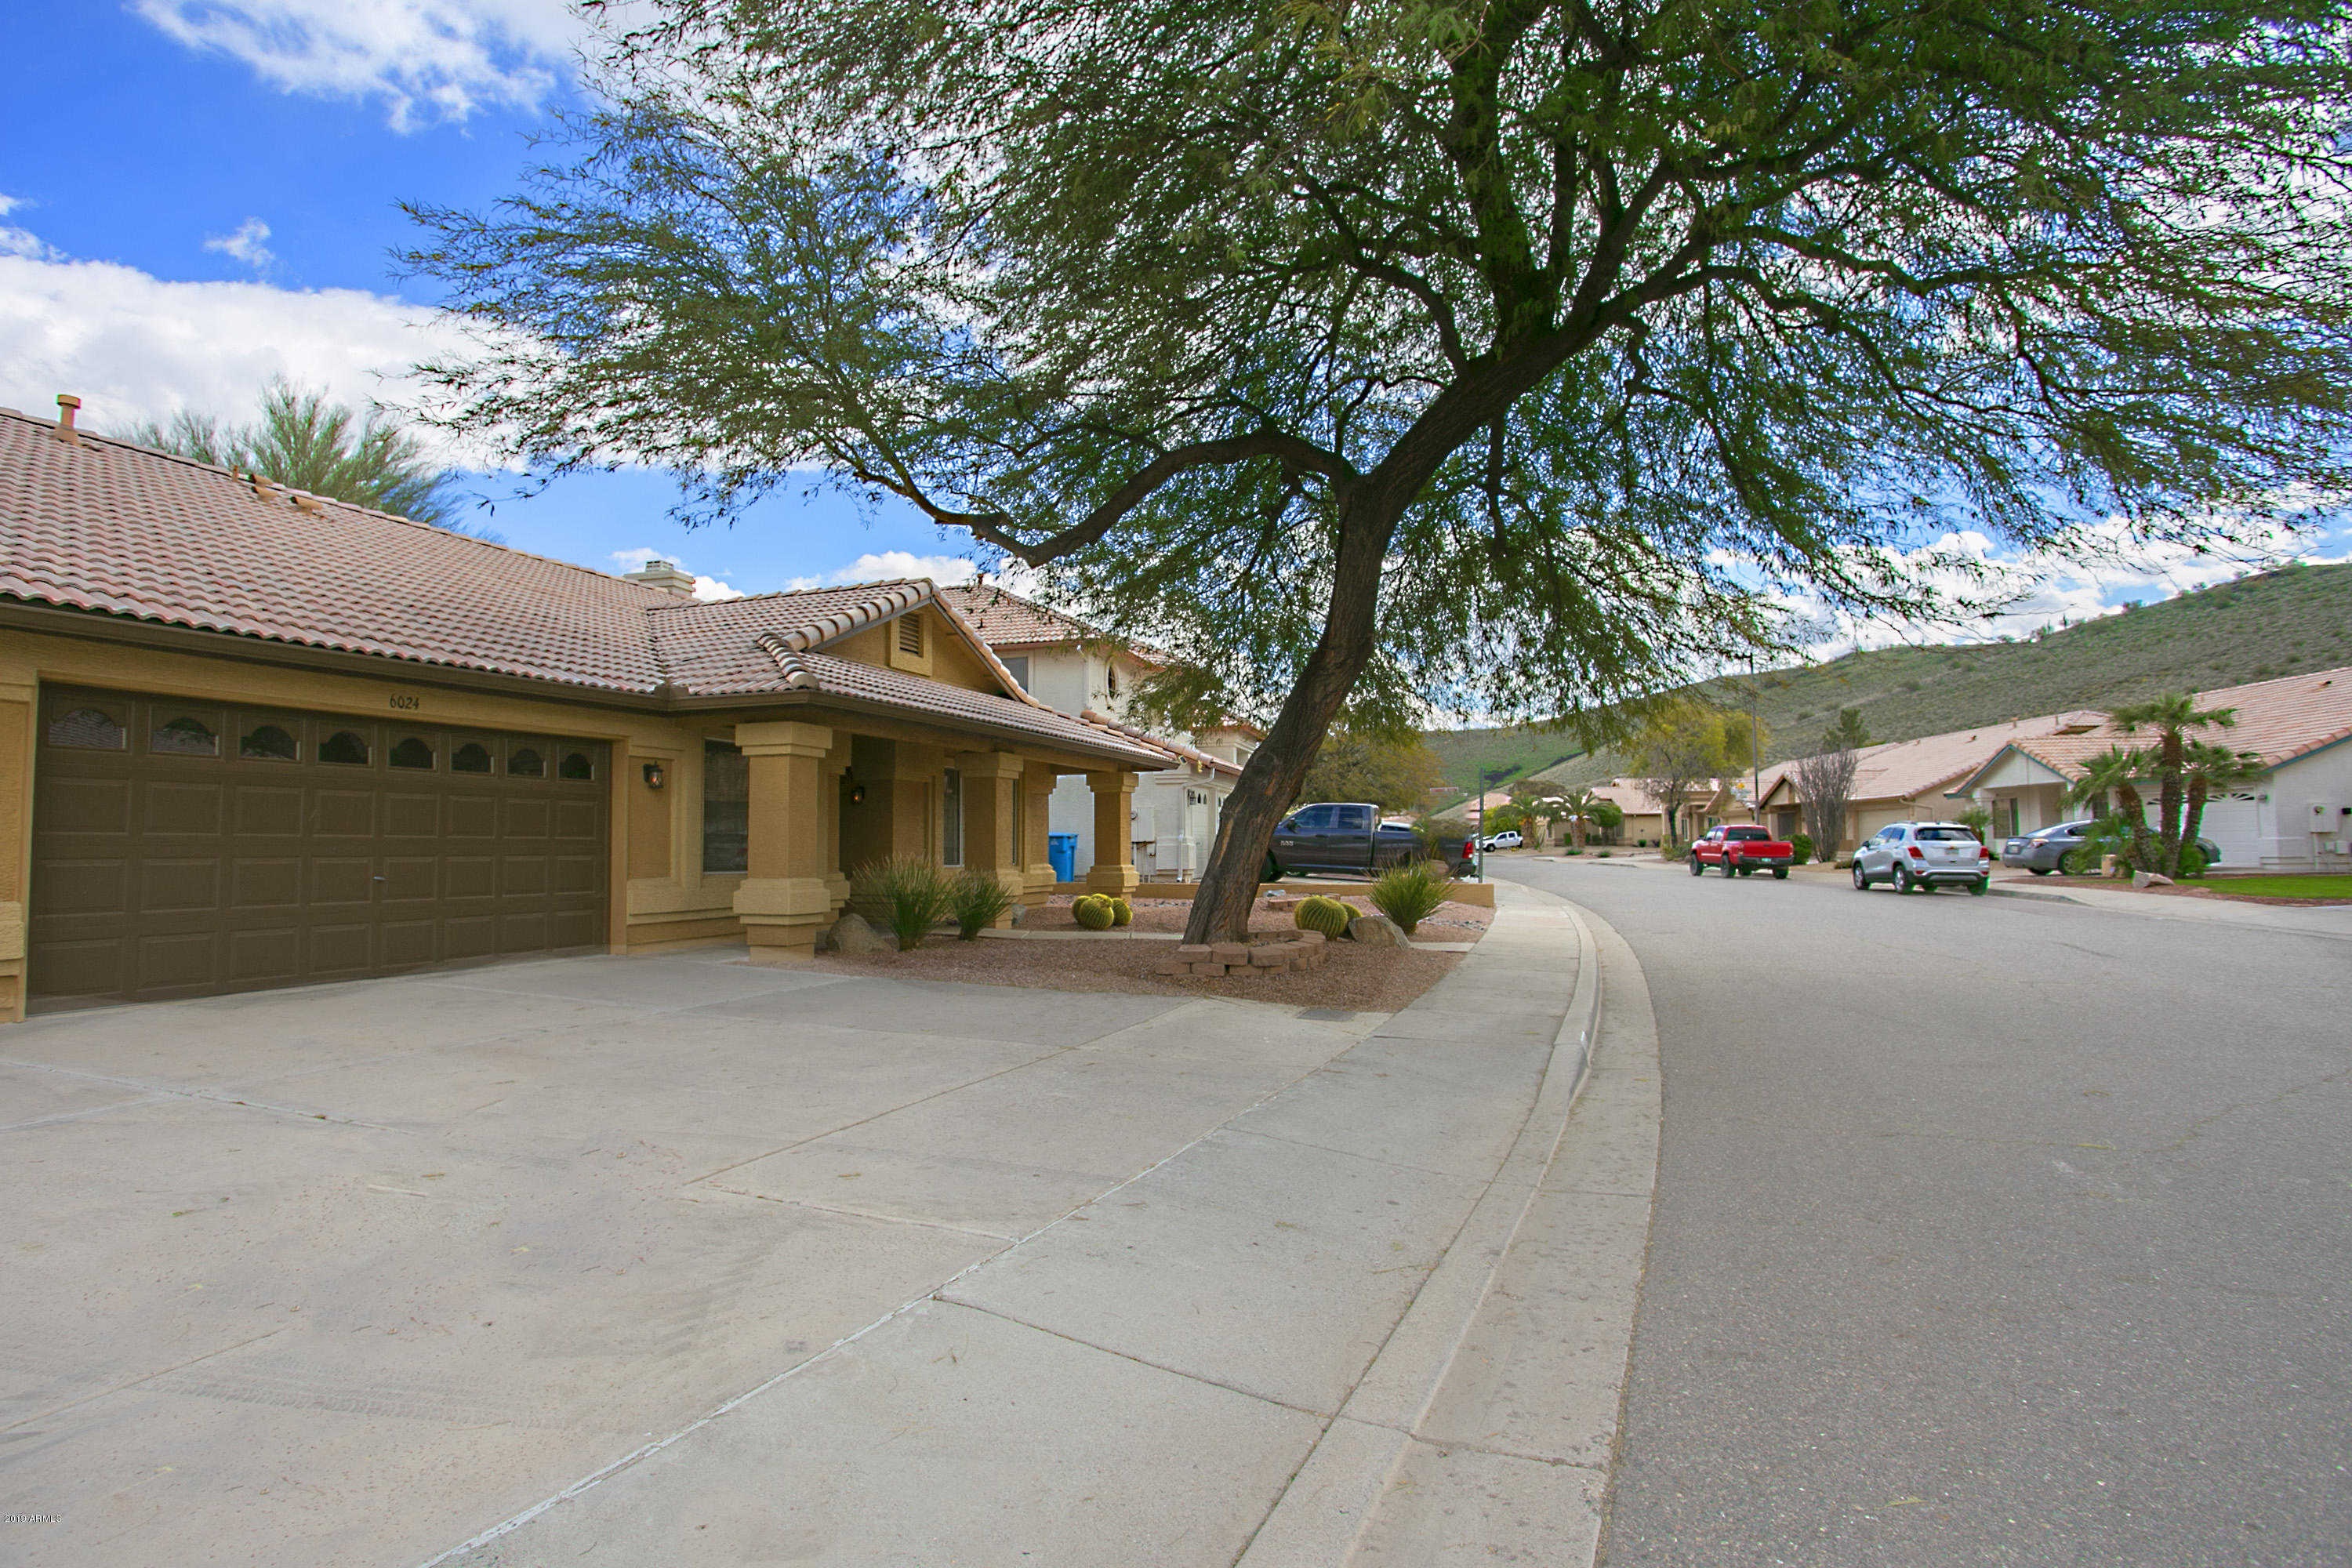 $342,500 - 4Br/2Ba - Home for Sale in Pinnacle Hill Lot 1-259 Tr A-o, Glendale